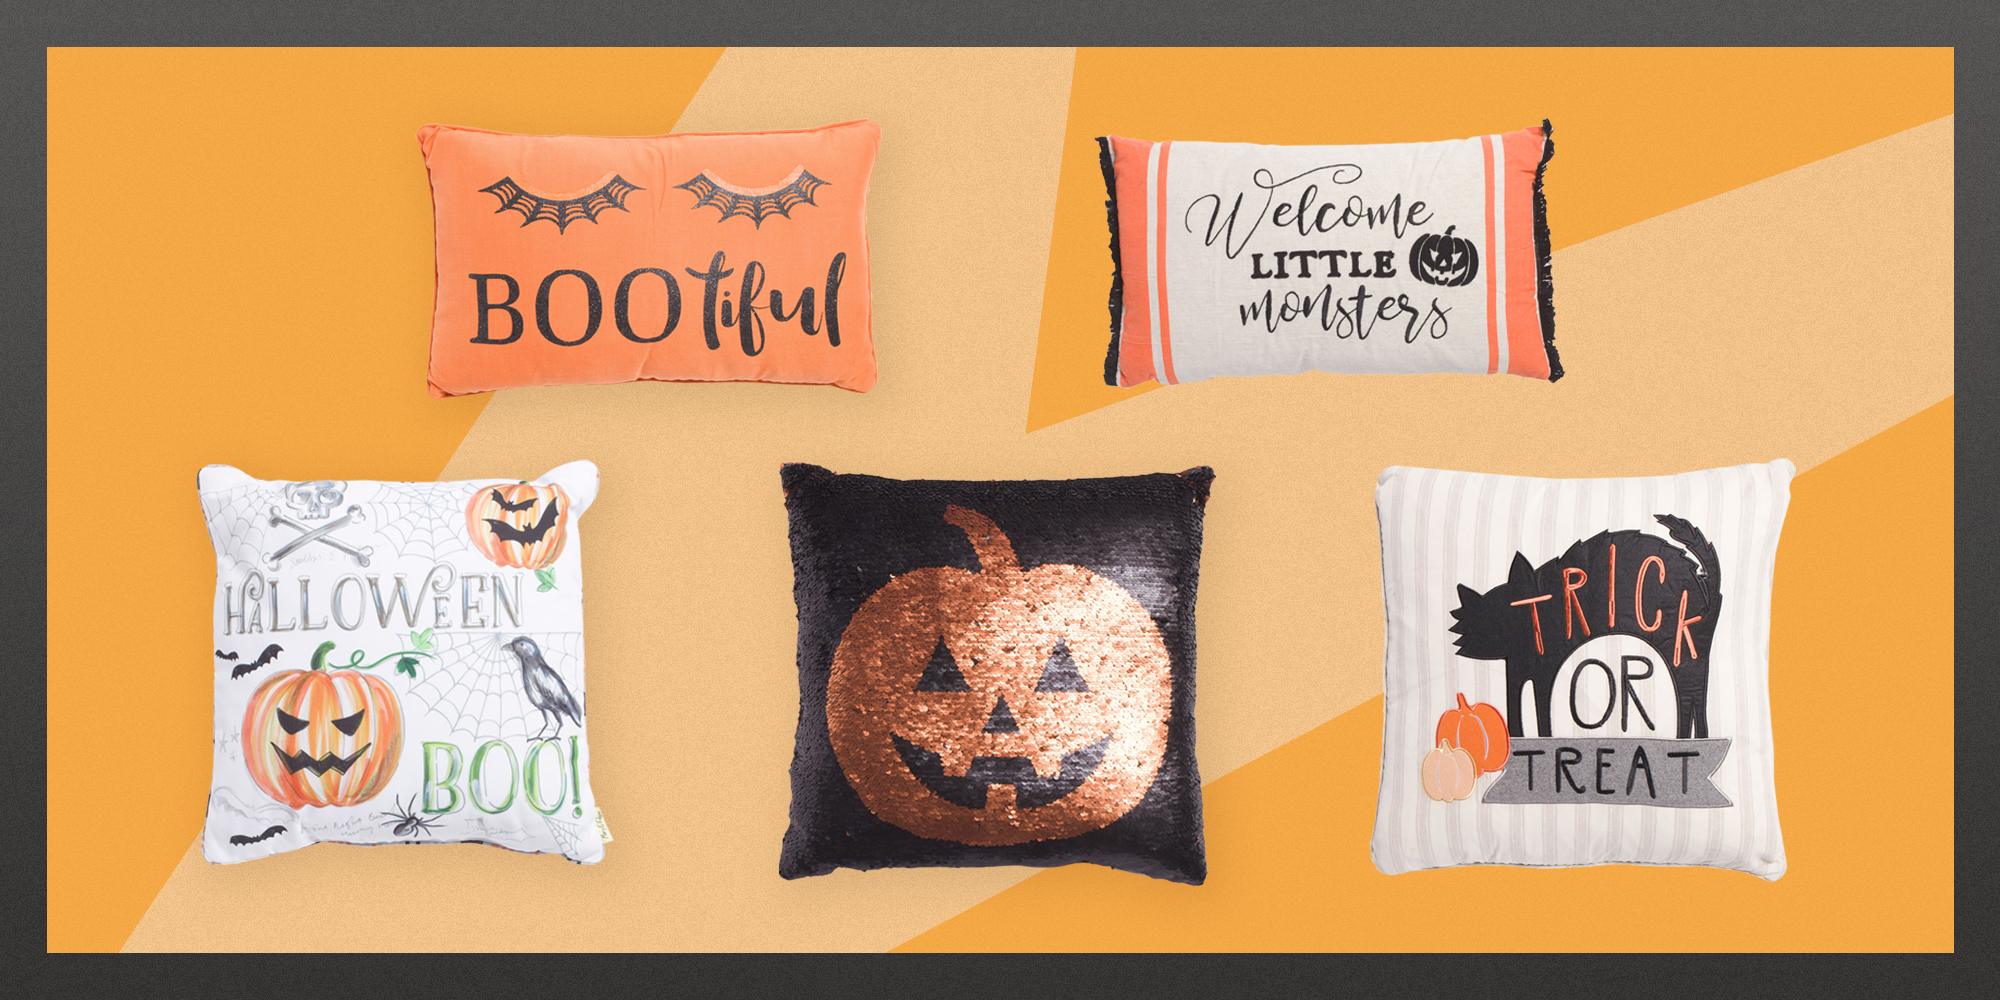 best halloween pillows at tj maxx - tj maxx halloween decor 2018